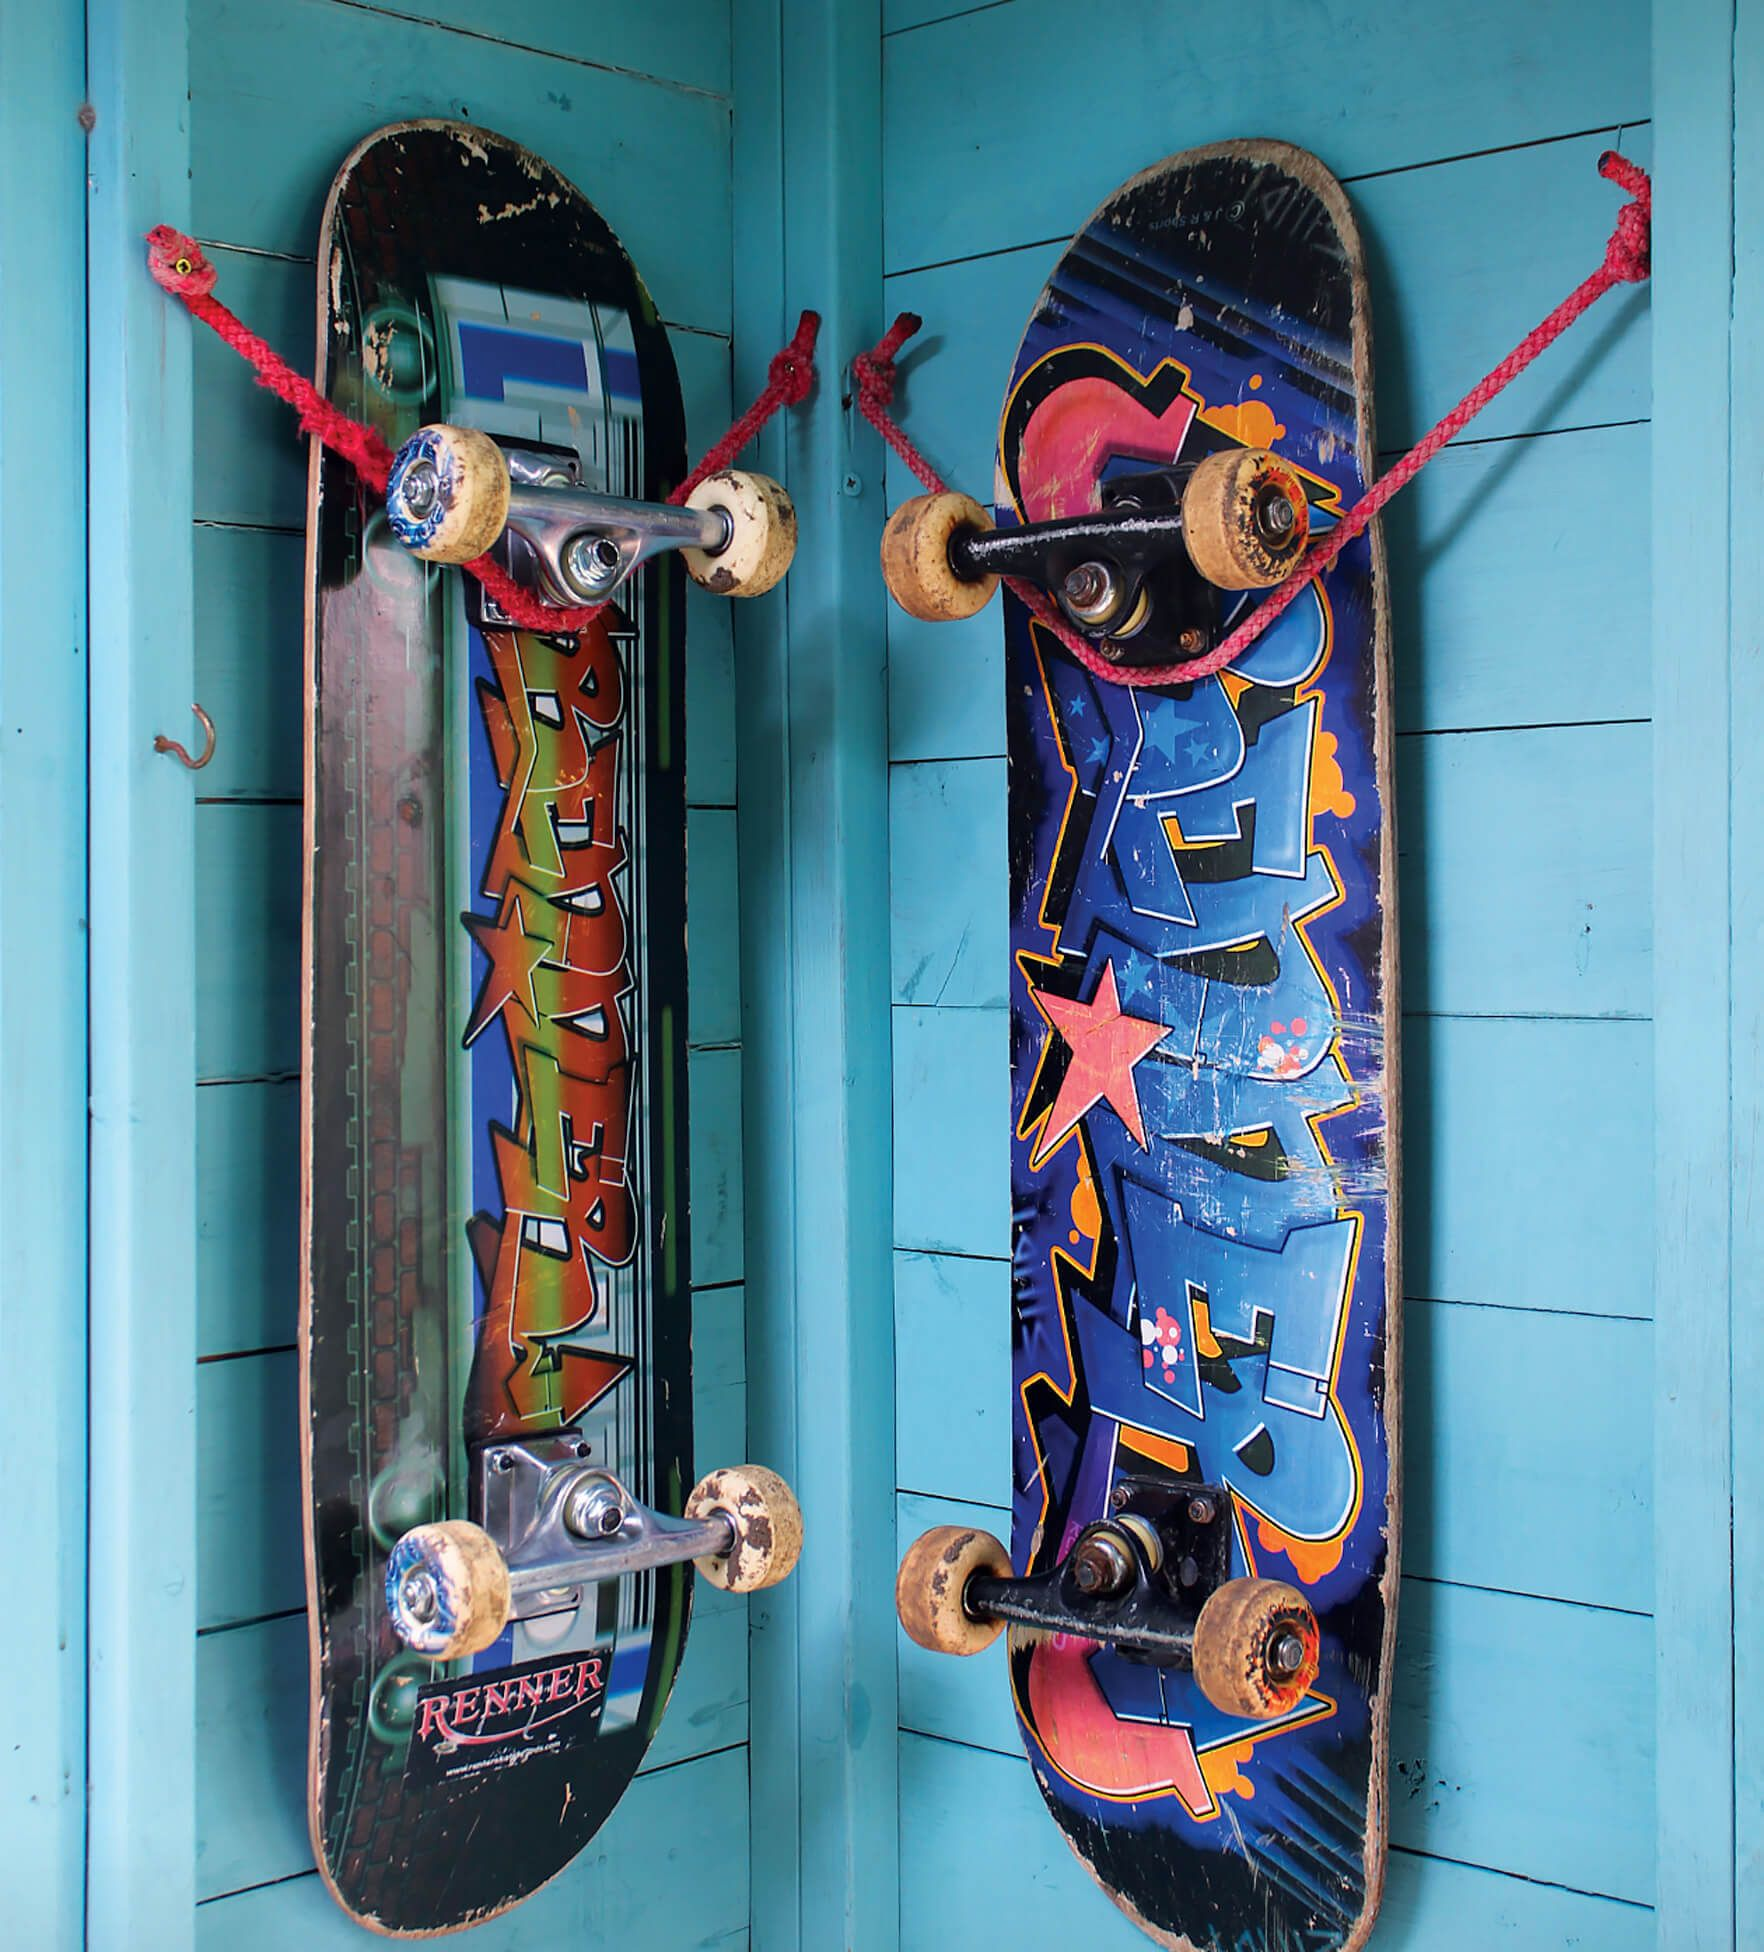 236ddb54713 A very simple (and cool) way to display your skateboard on the wall and  still have it easily accessible - requires nothing but old rope!